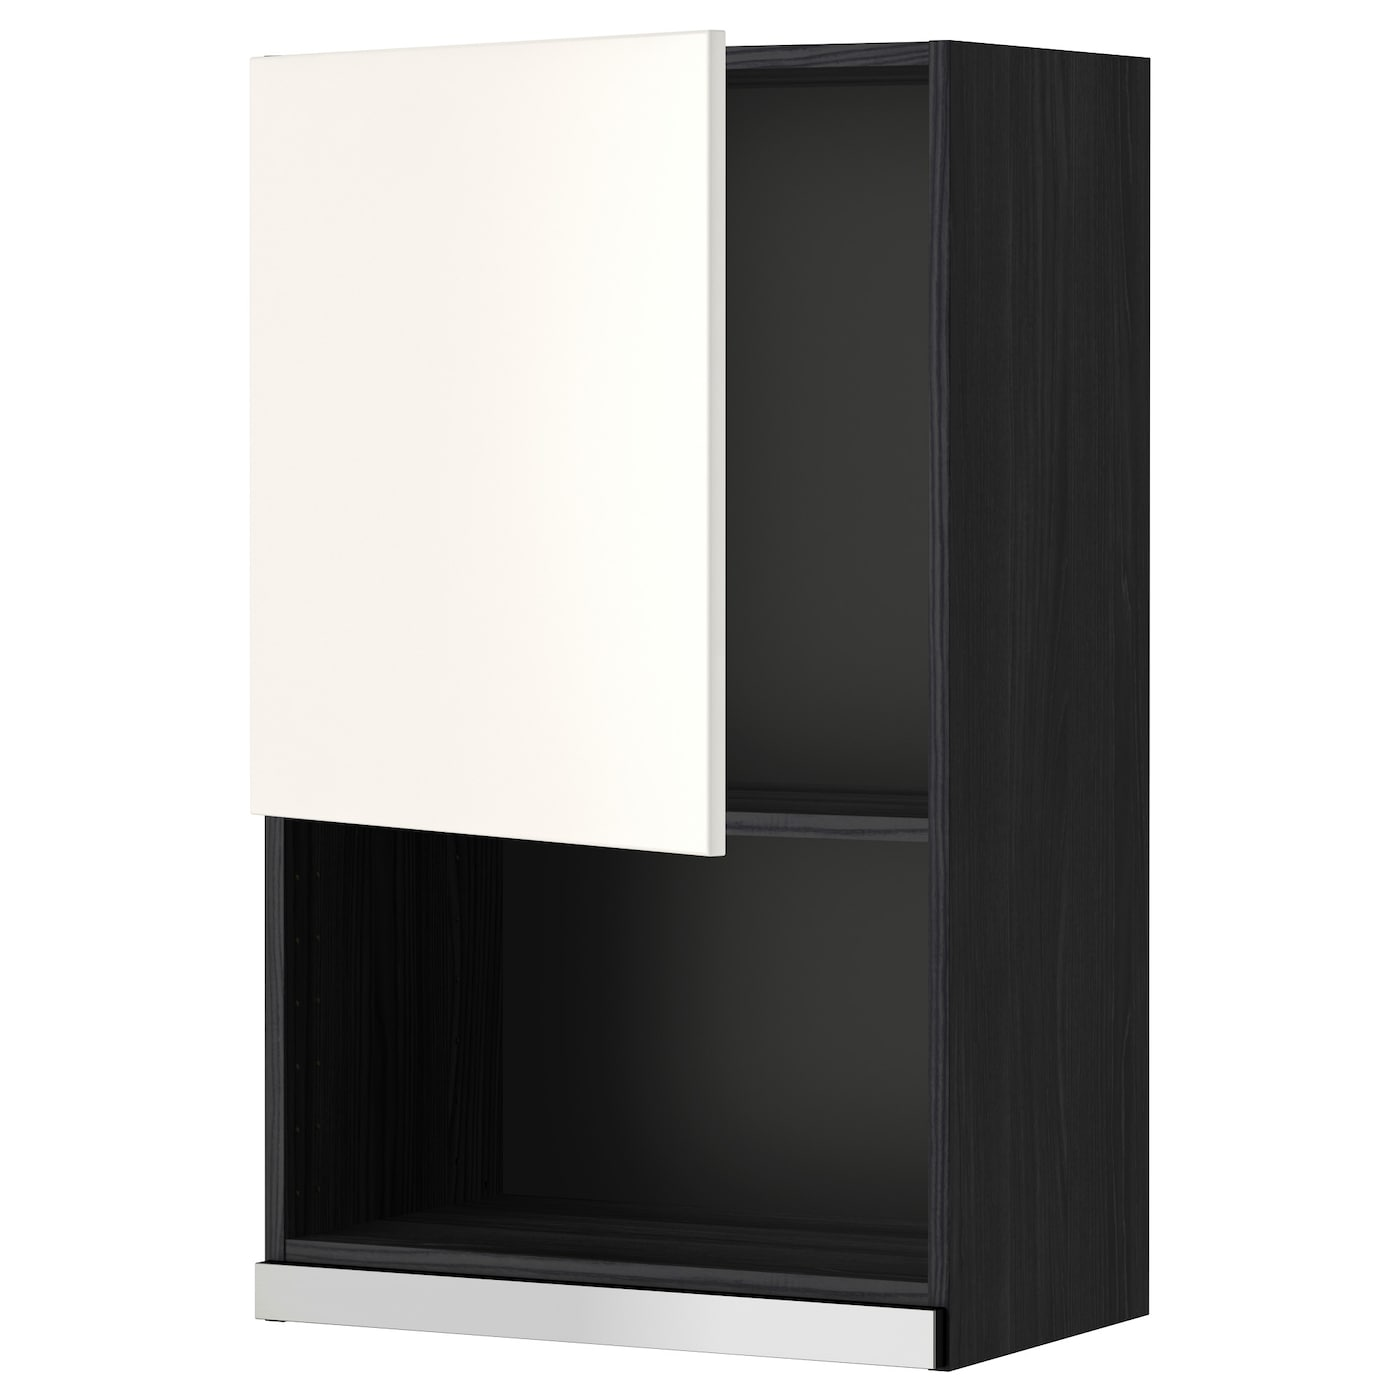 metod l mural pr micro ondes noir veddinge blanc 60x100 cm ikea. Black Bedroom Furniture Sets. Home Design Ideas